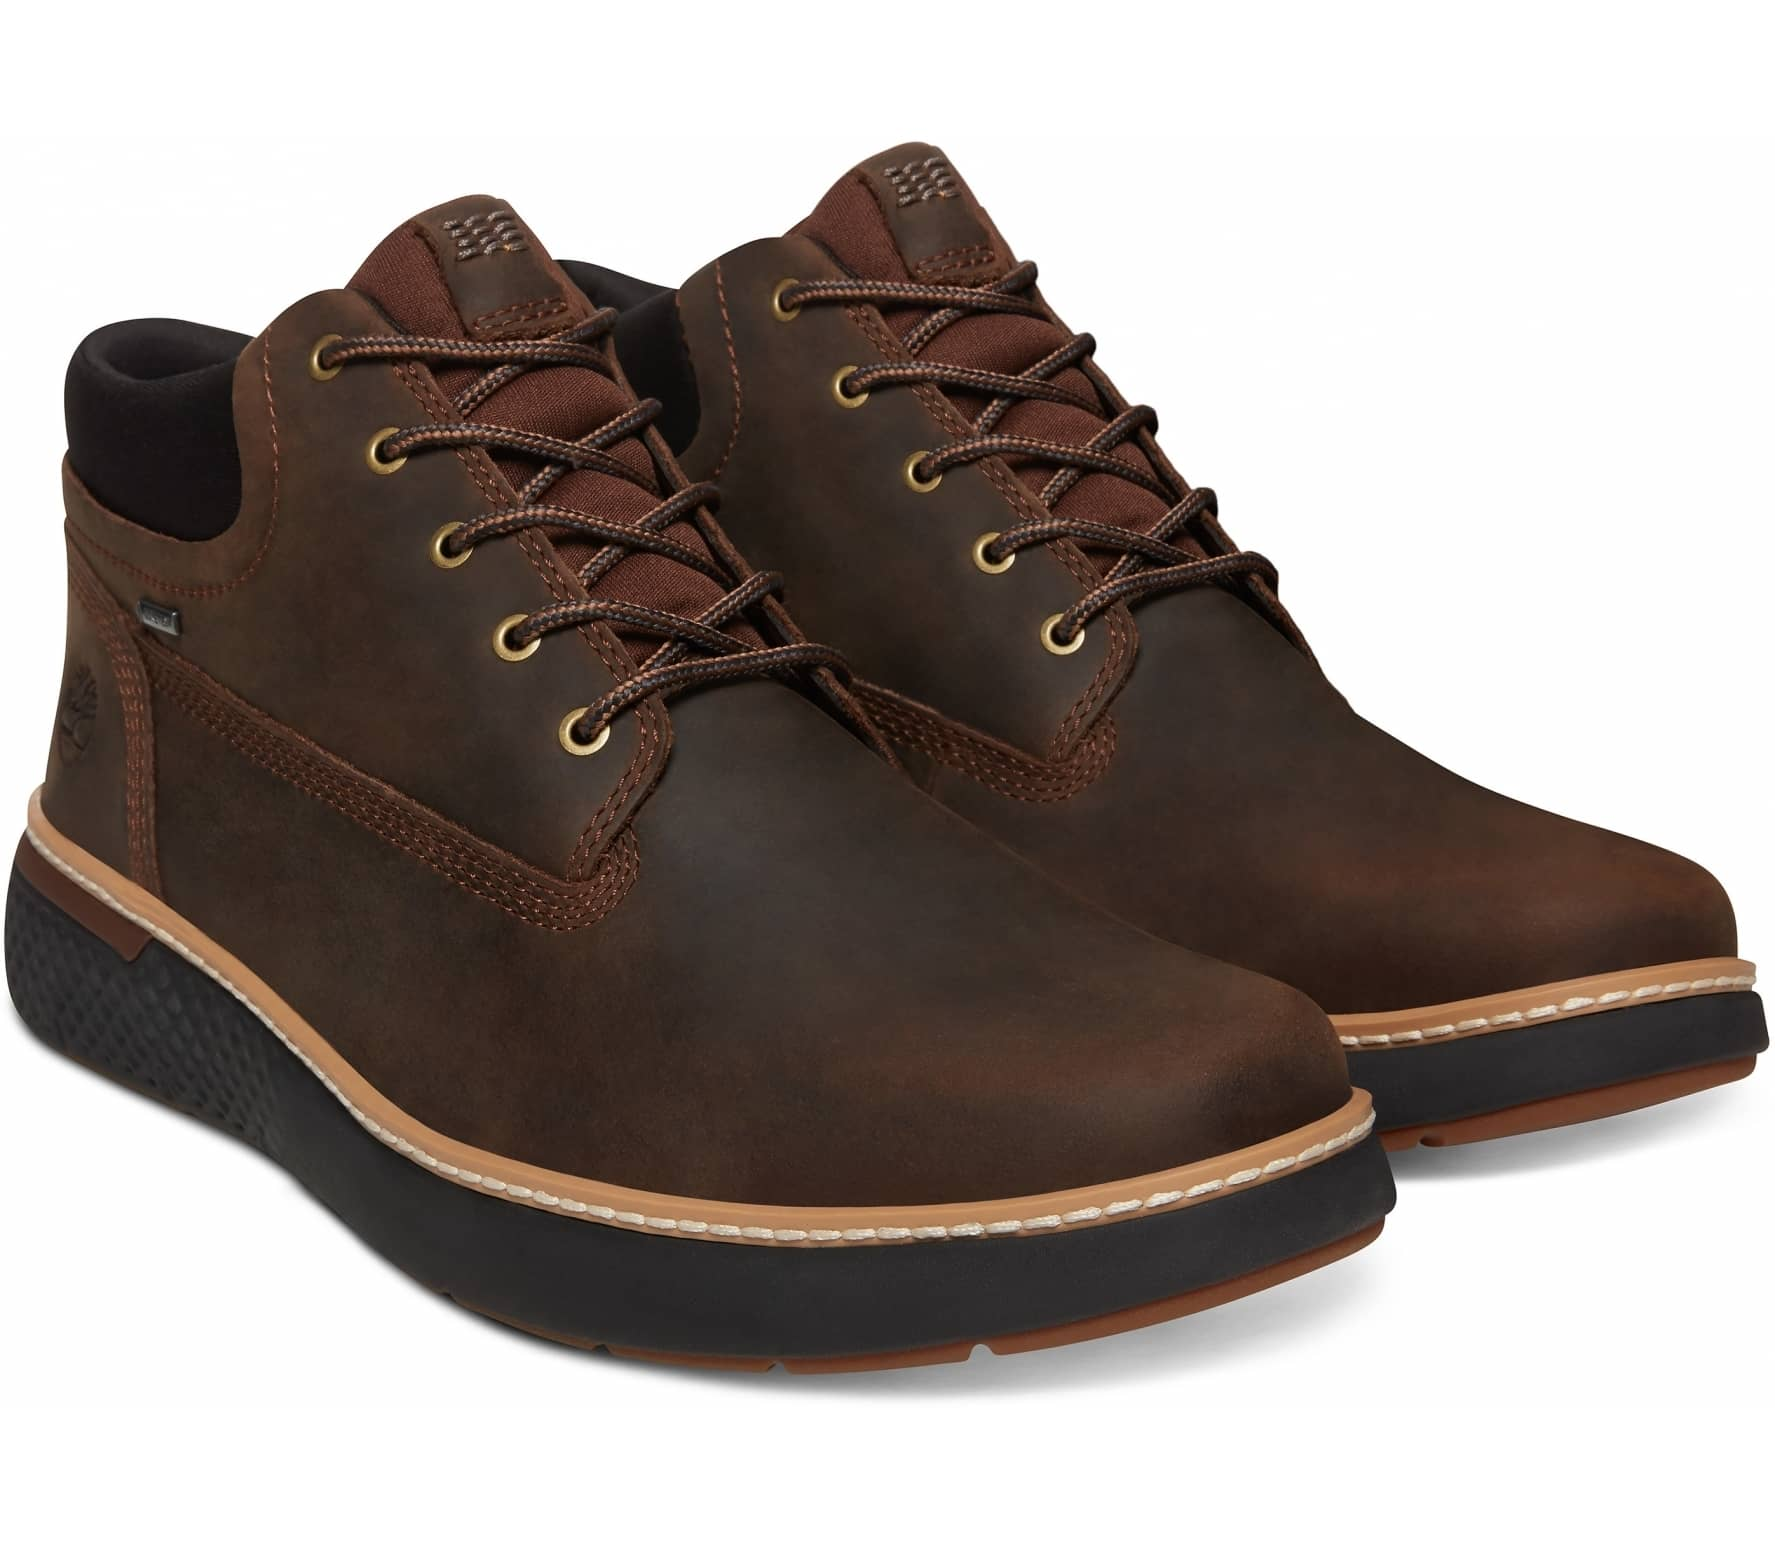 Timberland - Cross Mark GTX Chukka Uomo Mountain Scarpe lifestyle (marrone  scuro nero) cbac19d2685